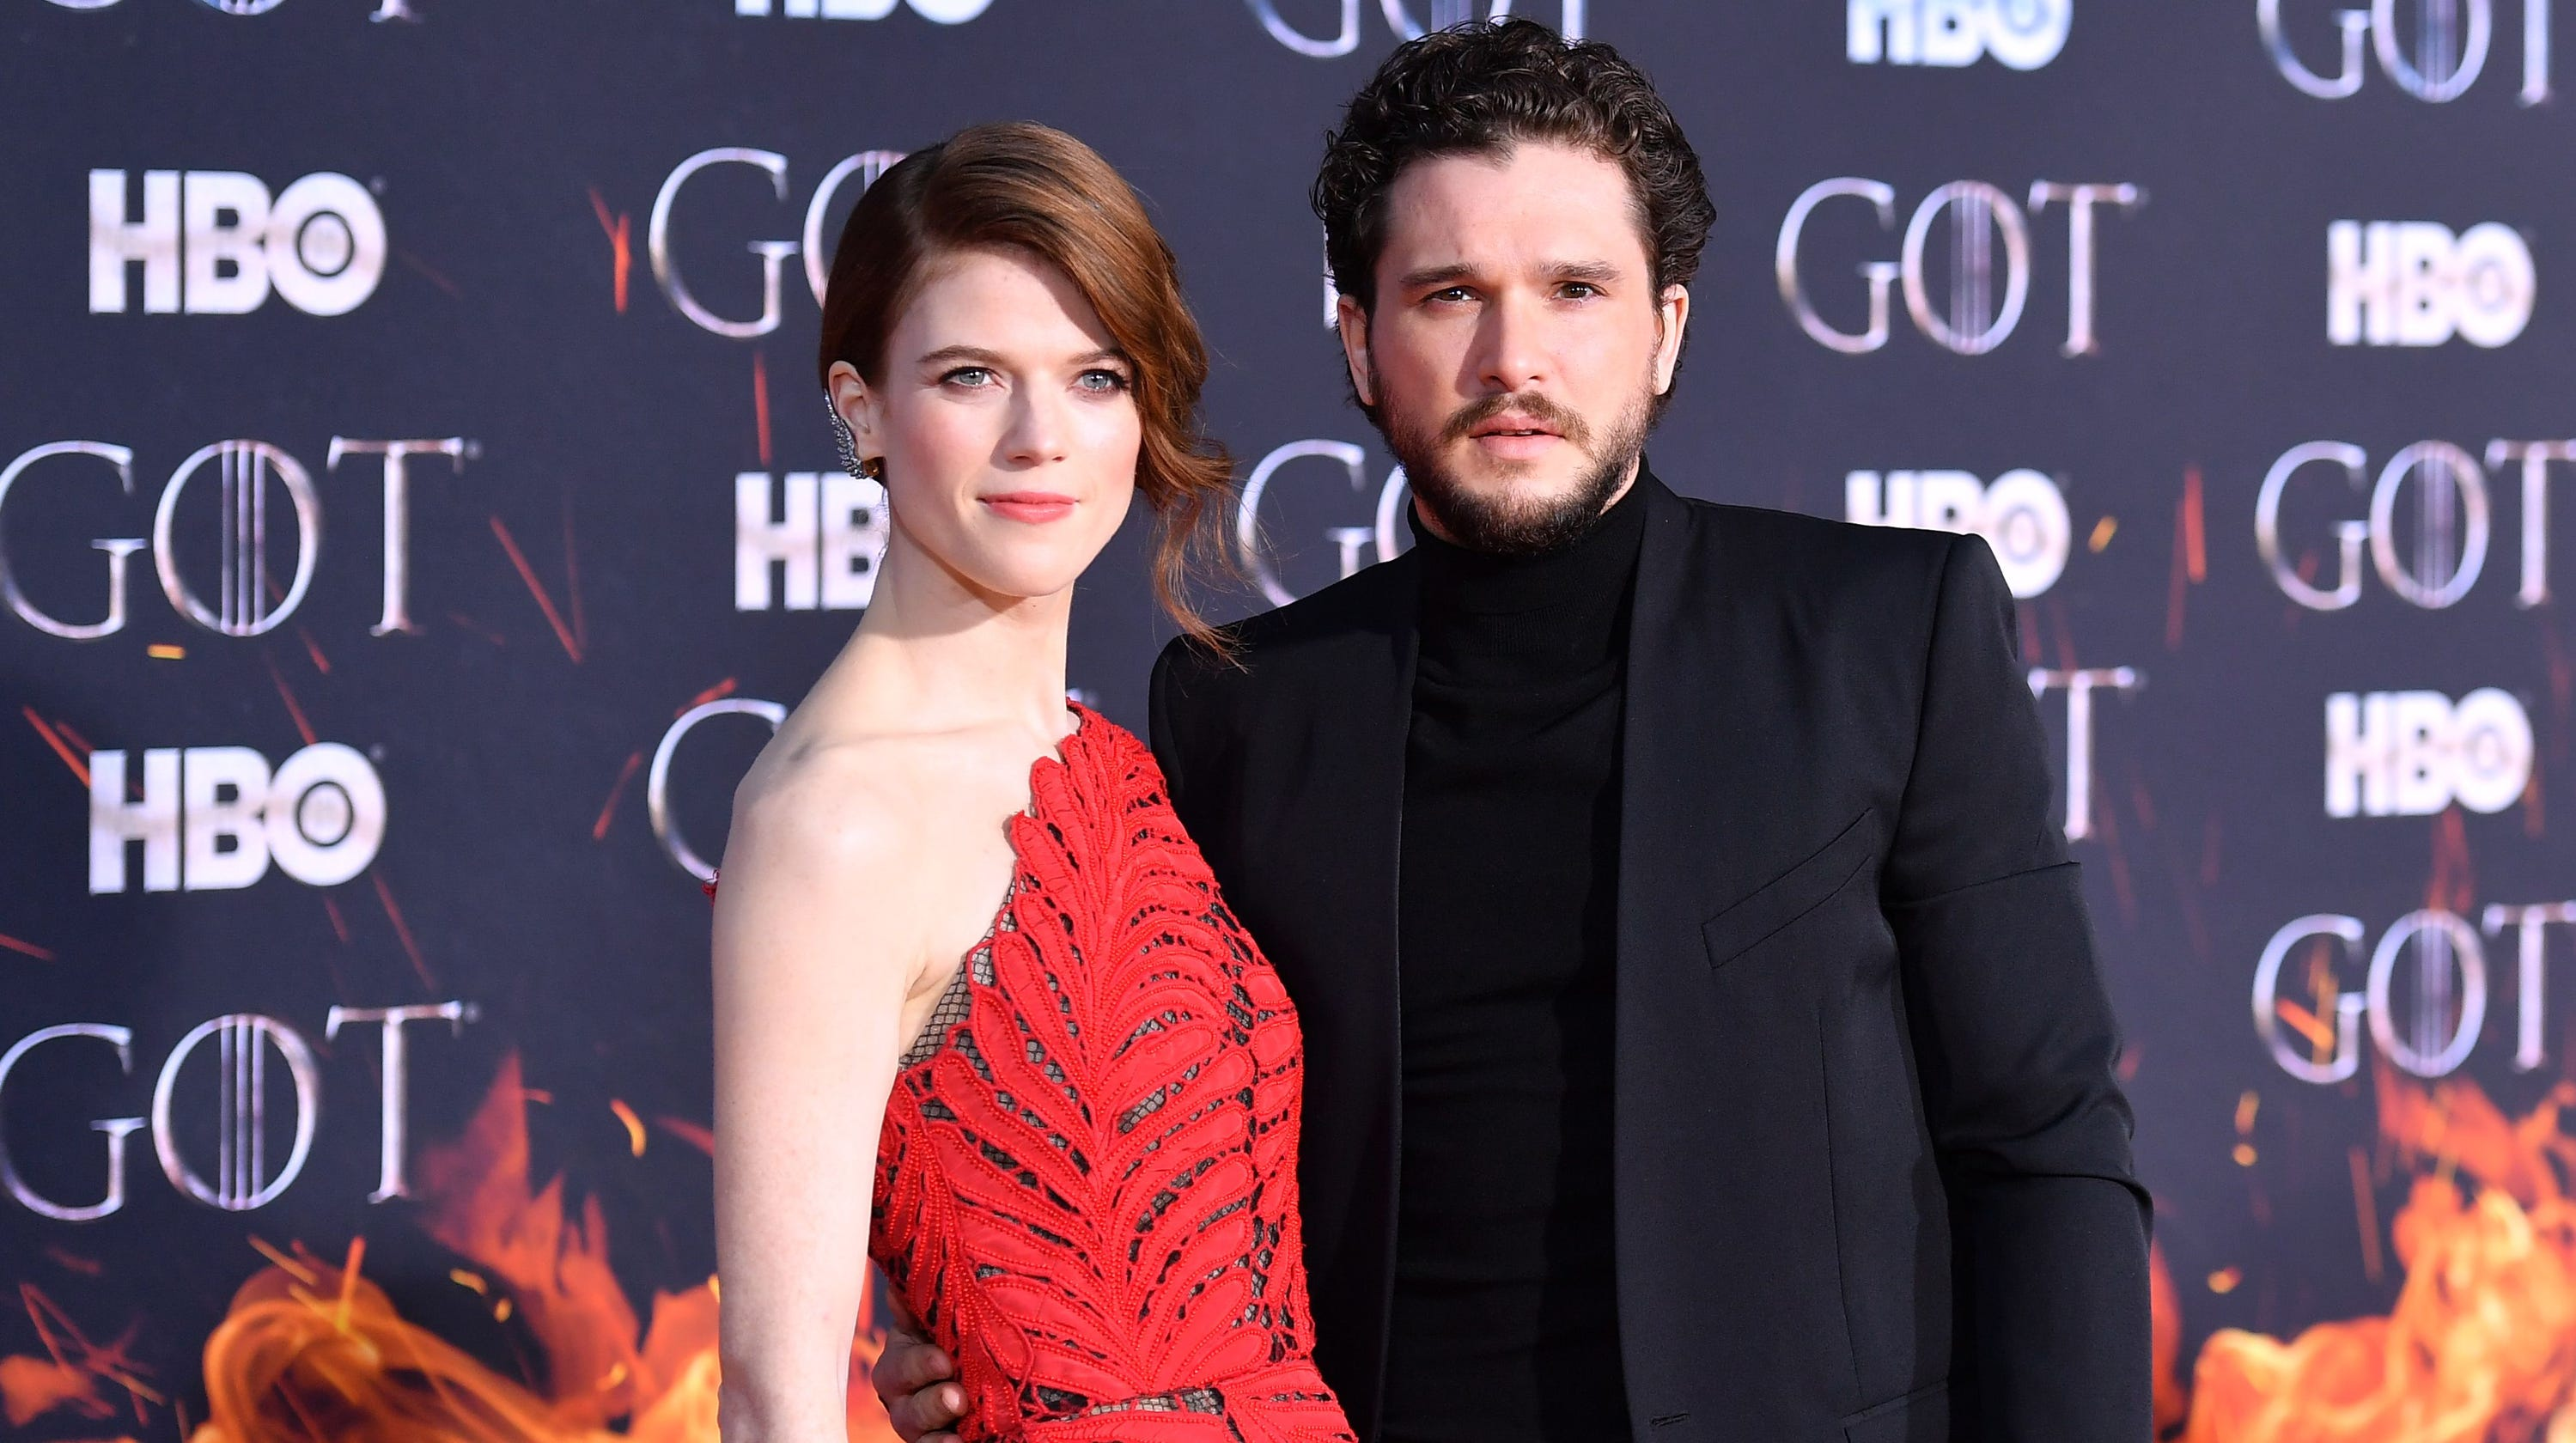 Kit Harington's fave 'Game of Thrones' scene is when Rose